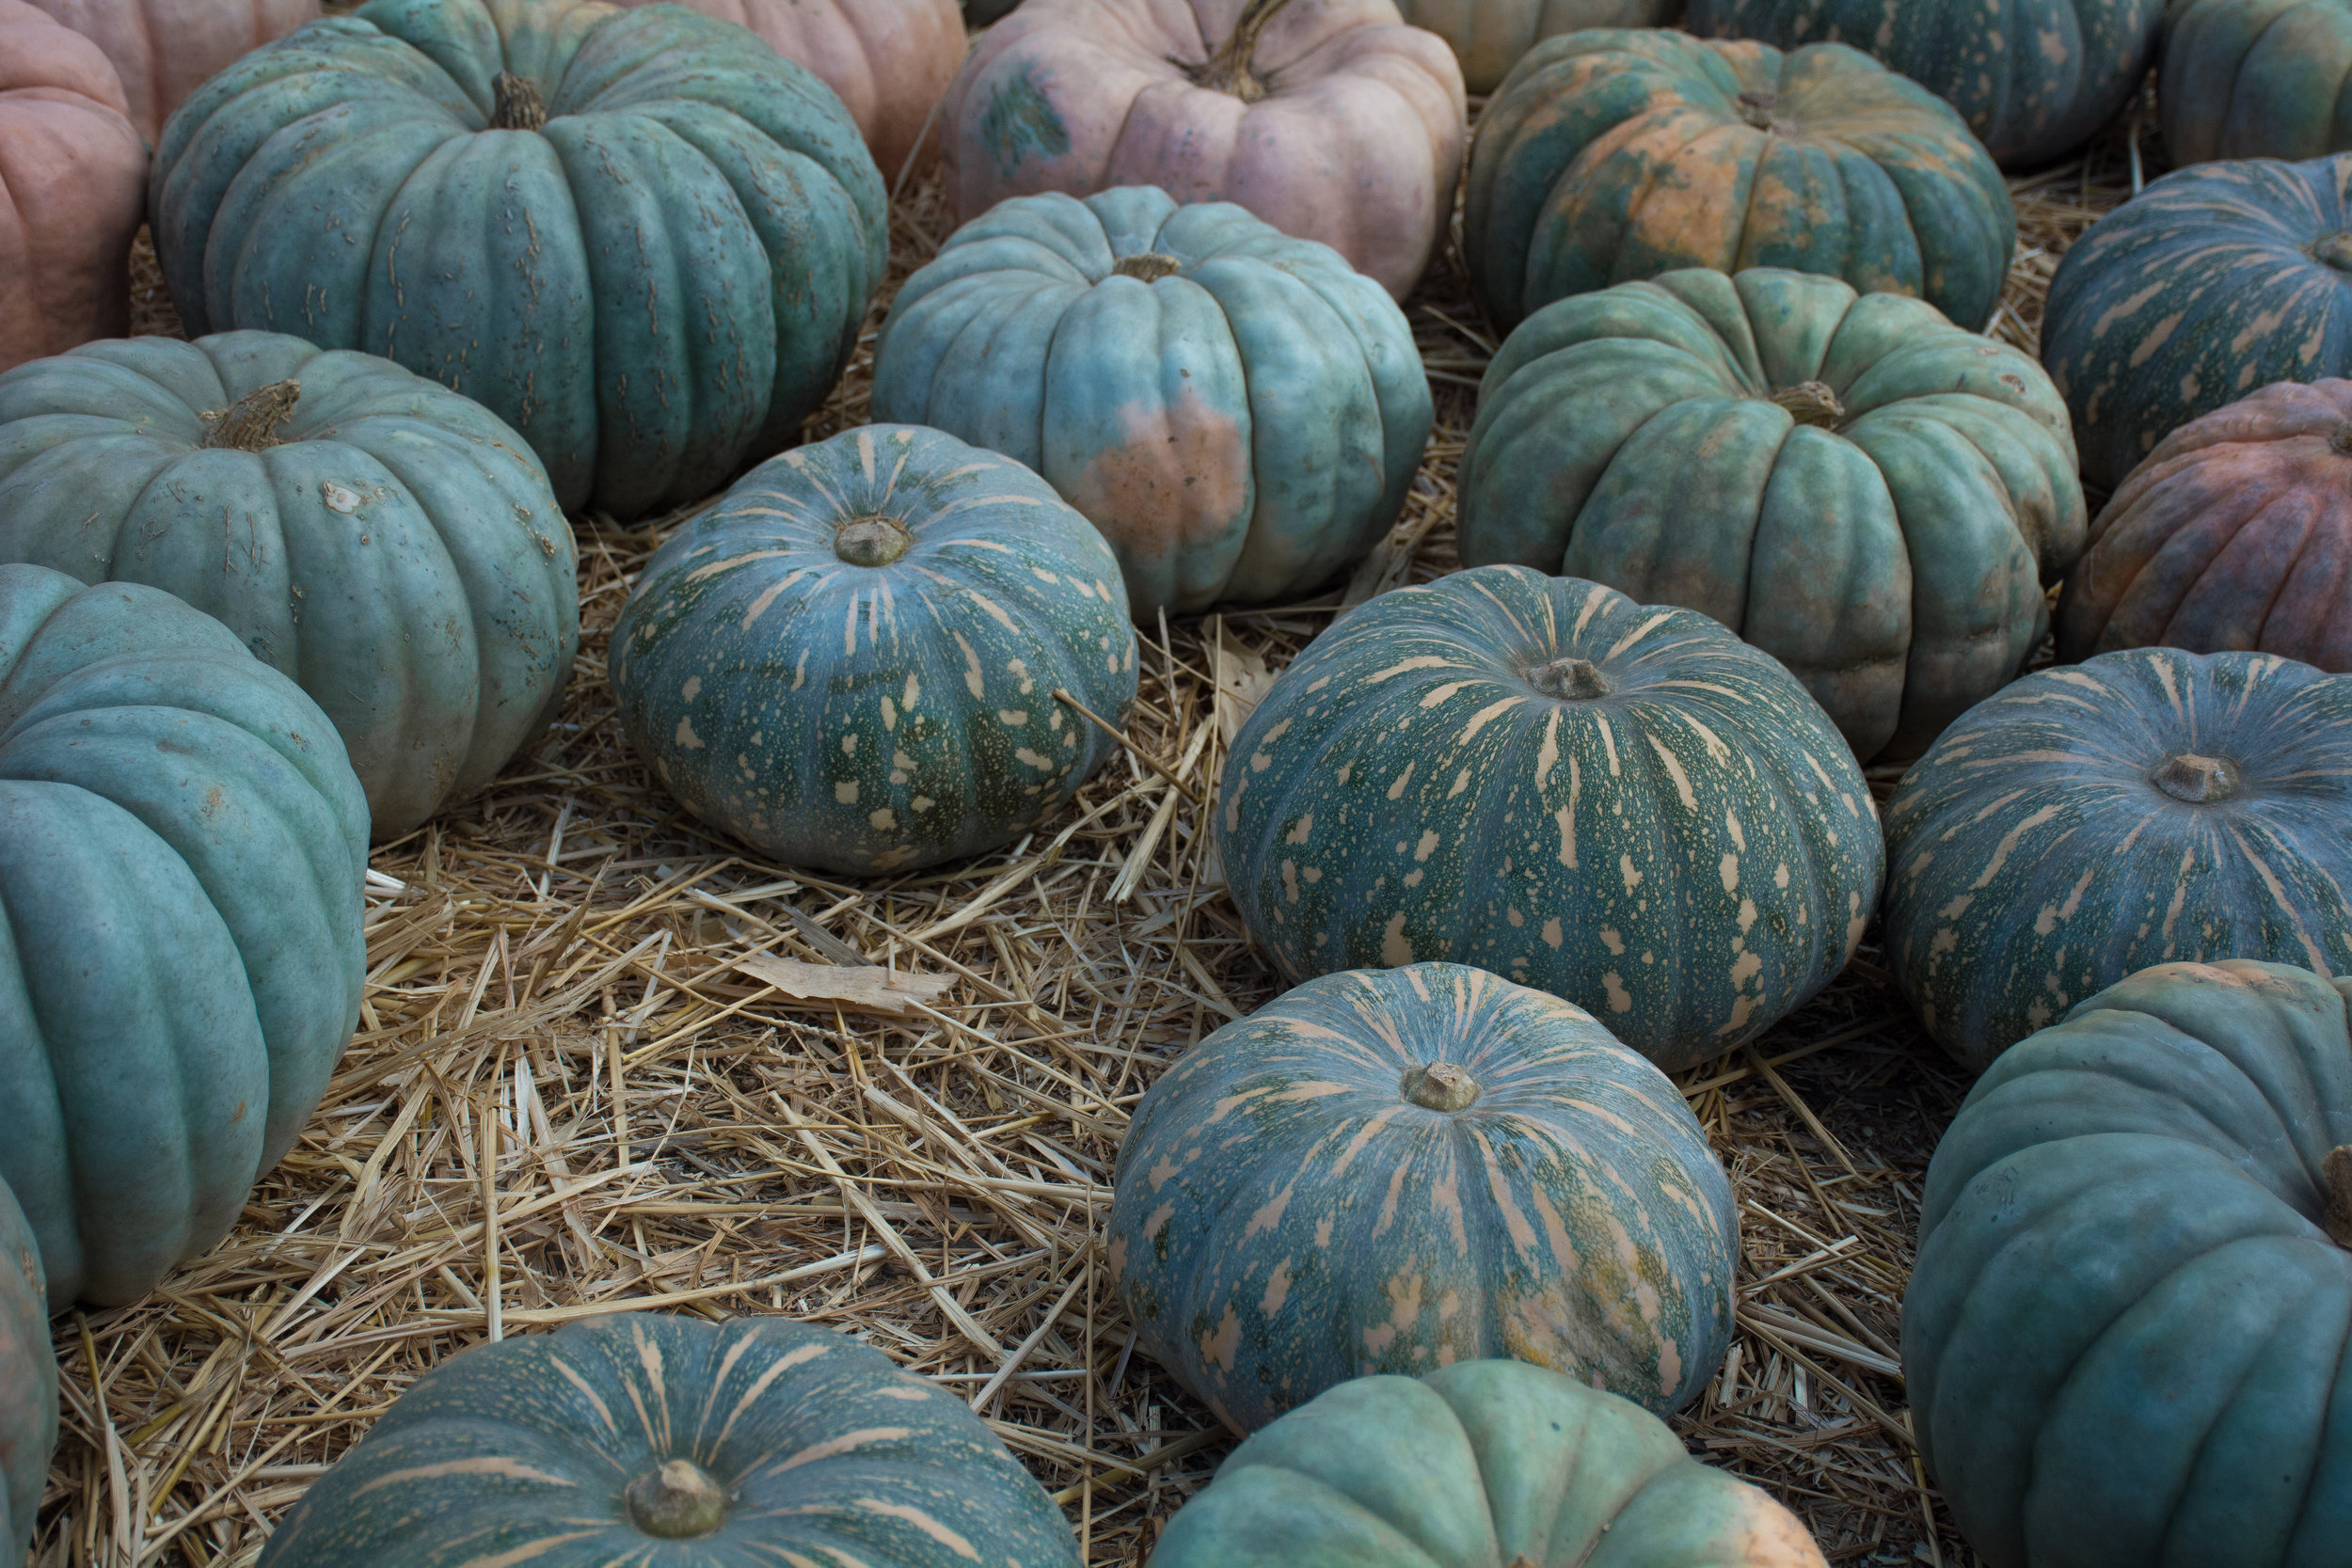 Looking for something other than your traditional round orange pumpkin, grab a wagon and check out the famous Mr.Bones Pumpkin Patch that has over hundreds and hundreds of all sorts of pumpkins to pick from located in Culver City,California on October 8th, 2019.(Adriel Navarro, Writer/Corsair Staff)